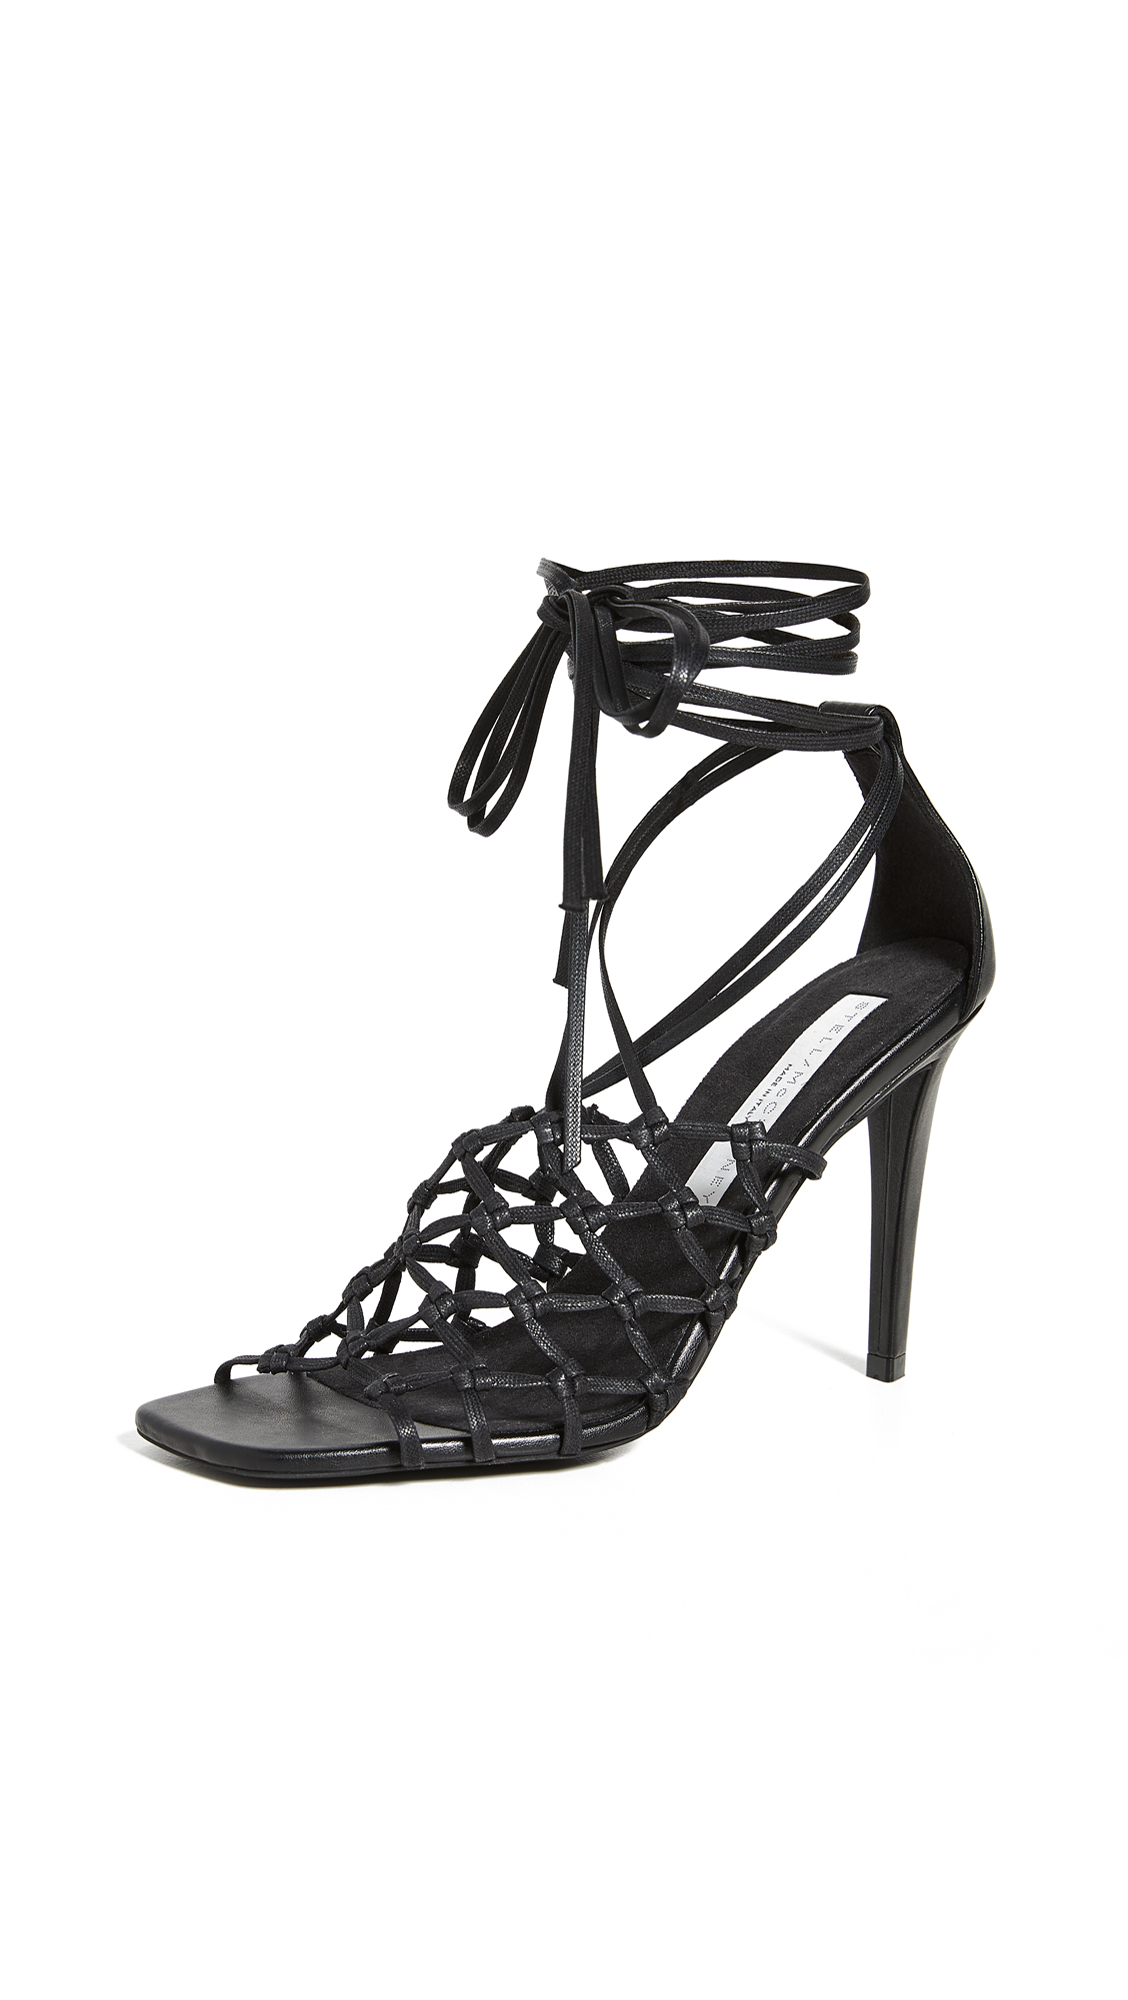 Buy Stella McCartney Woven Sandals online, shop Stella McCartney